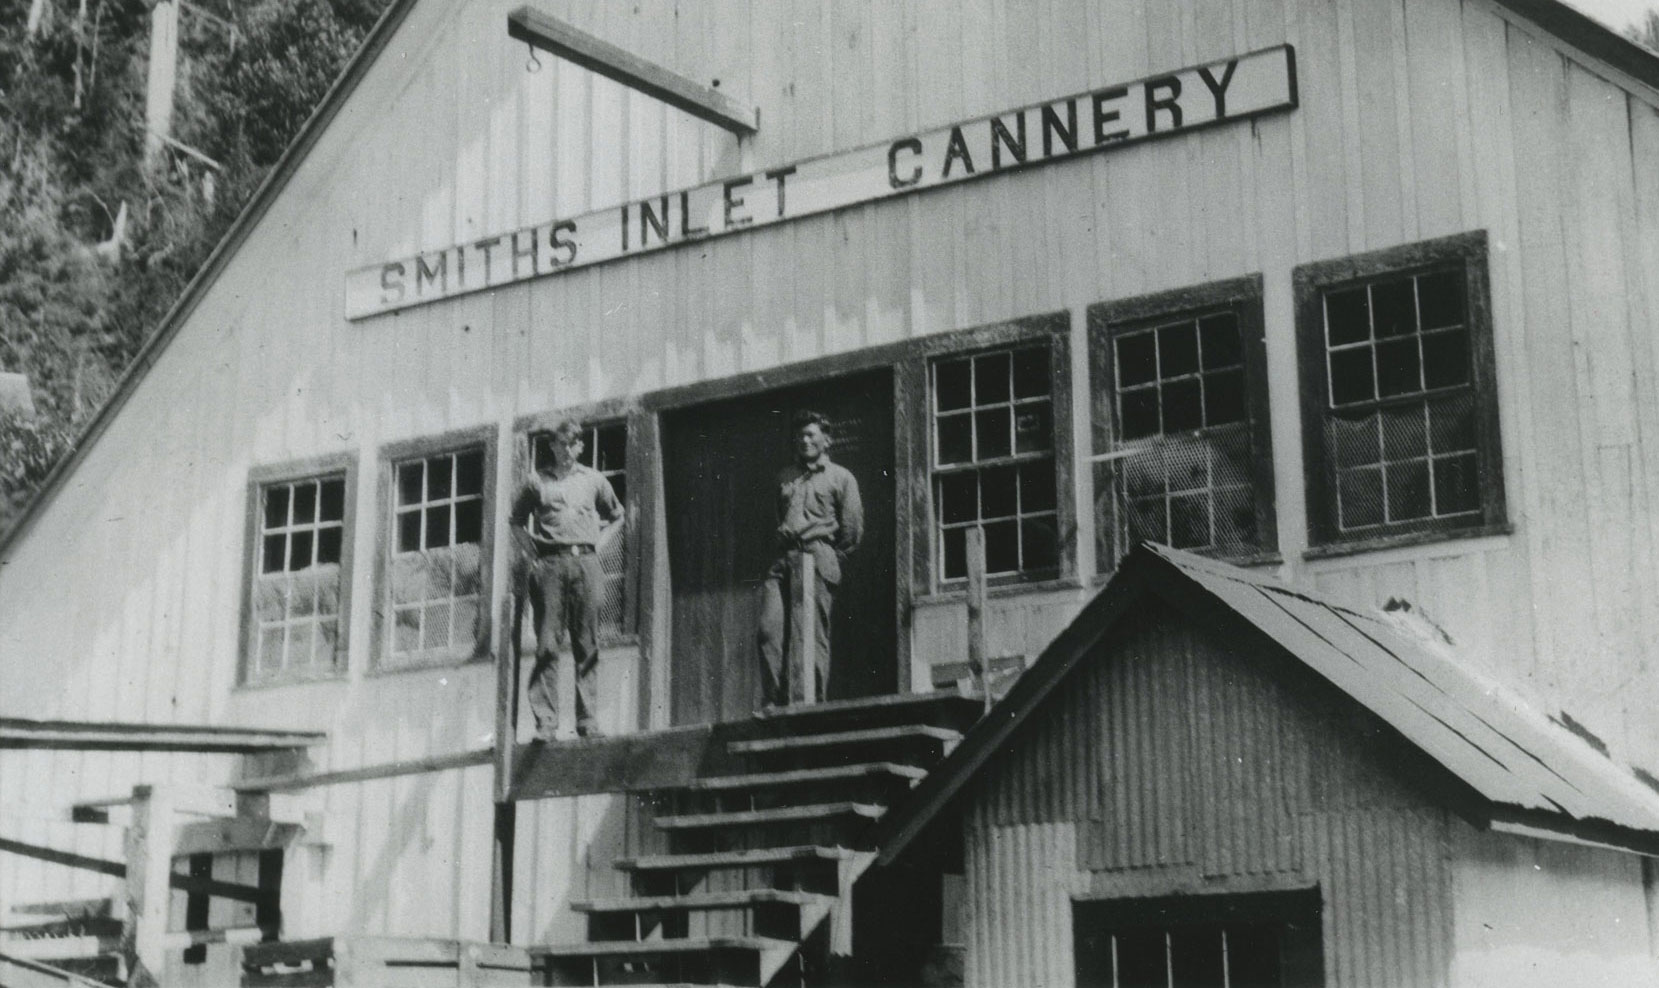 Two men stand at the top of steps leading into the wooden cannery building